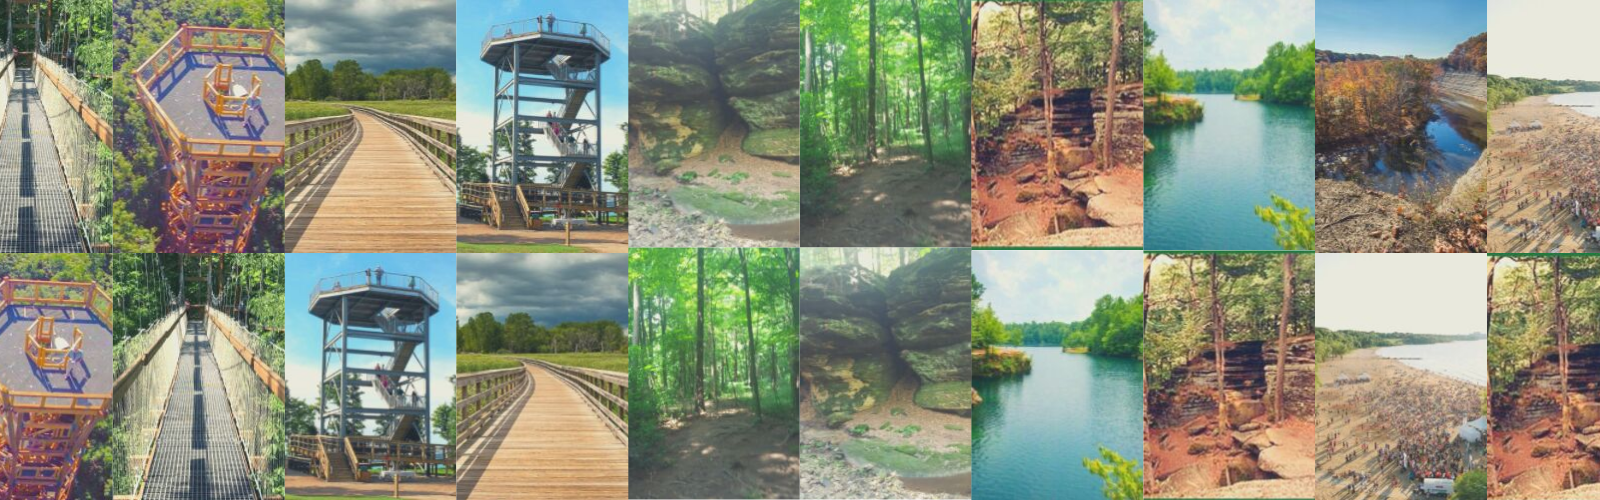 LST FAVORITE Cleveland Hiking Destinations